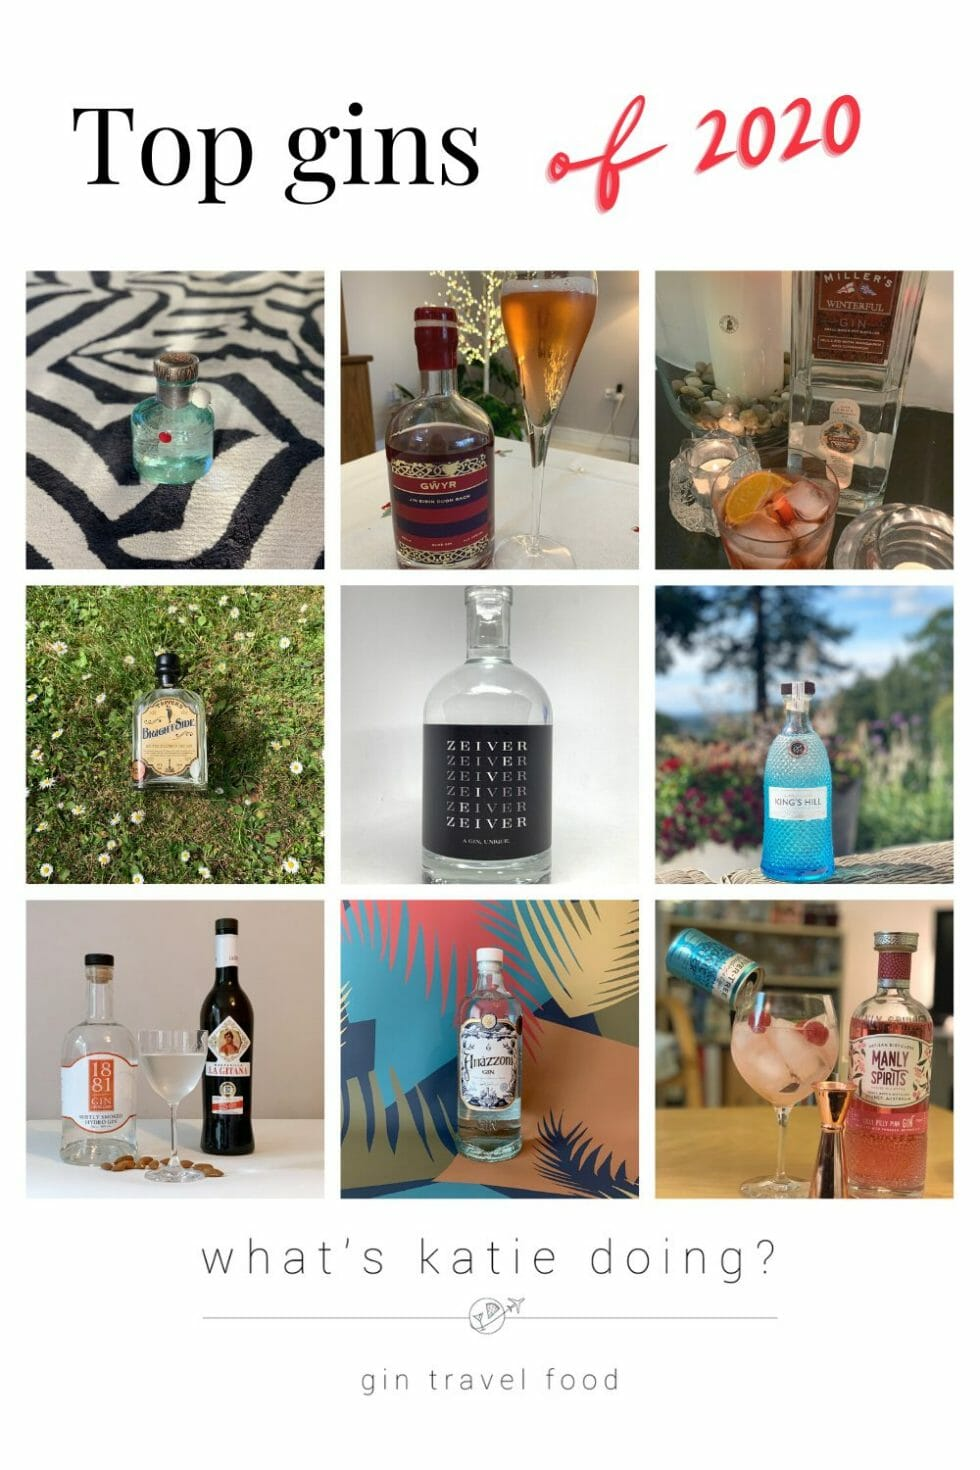 Top gins of 2020